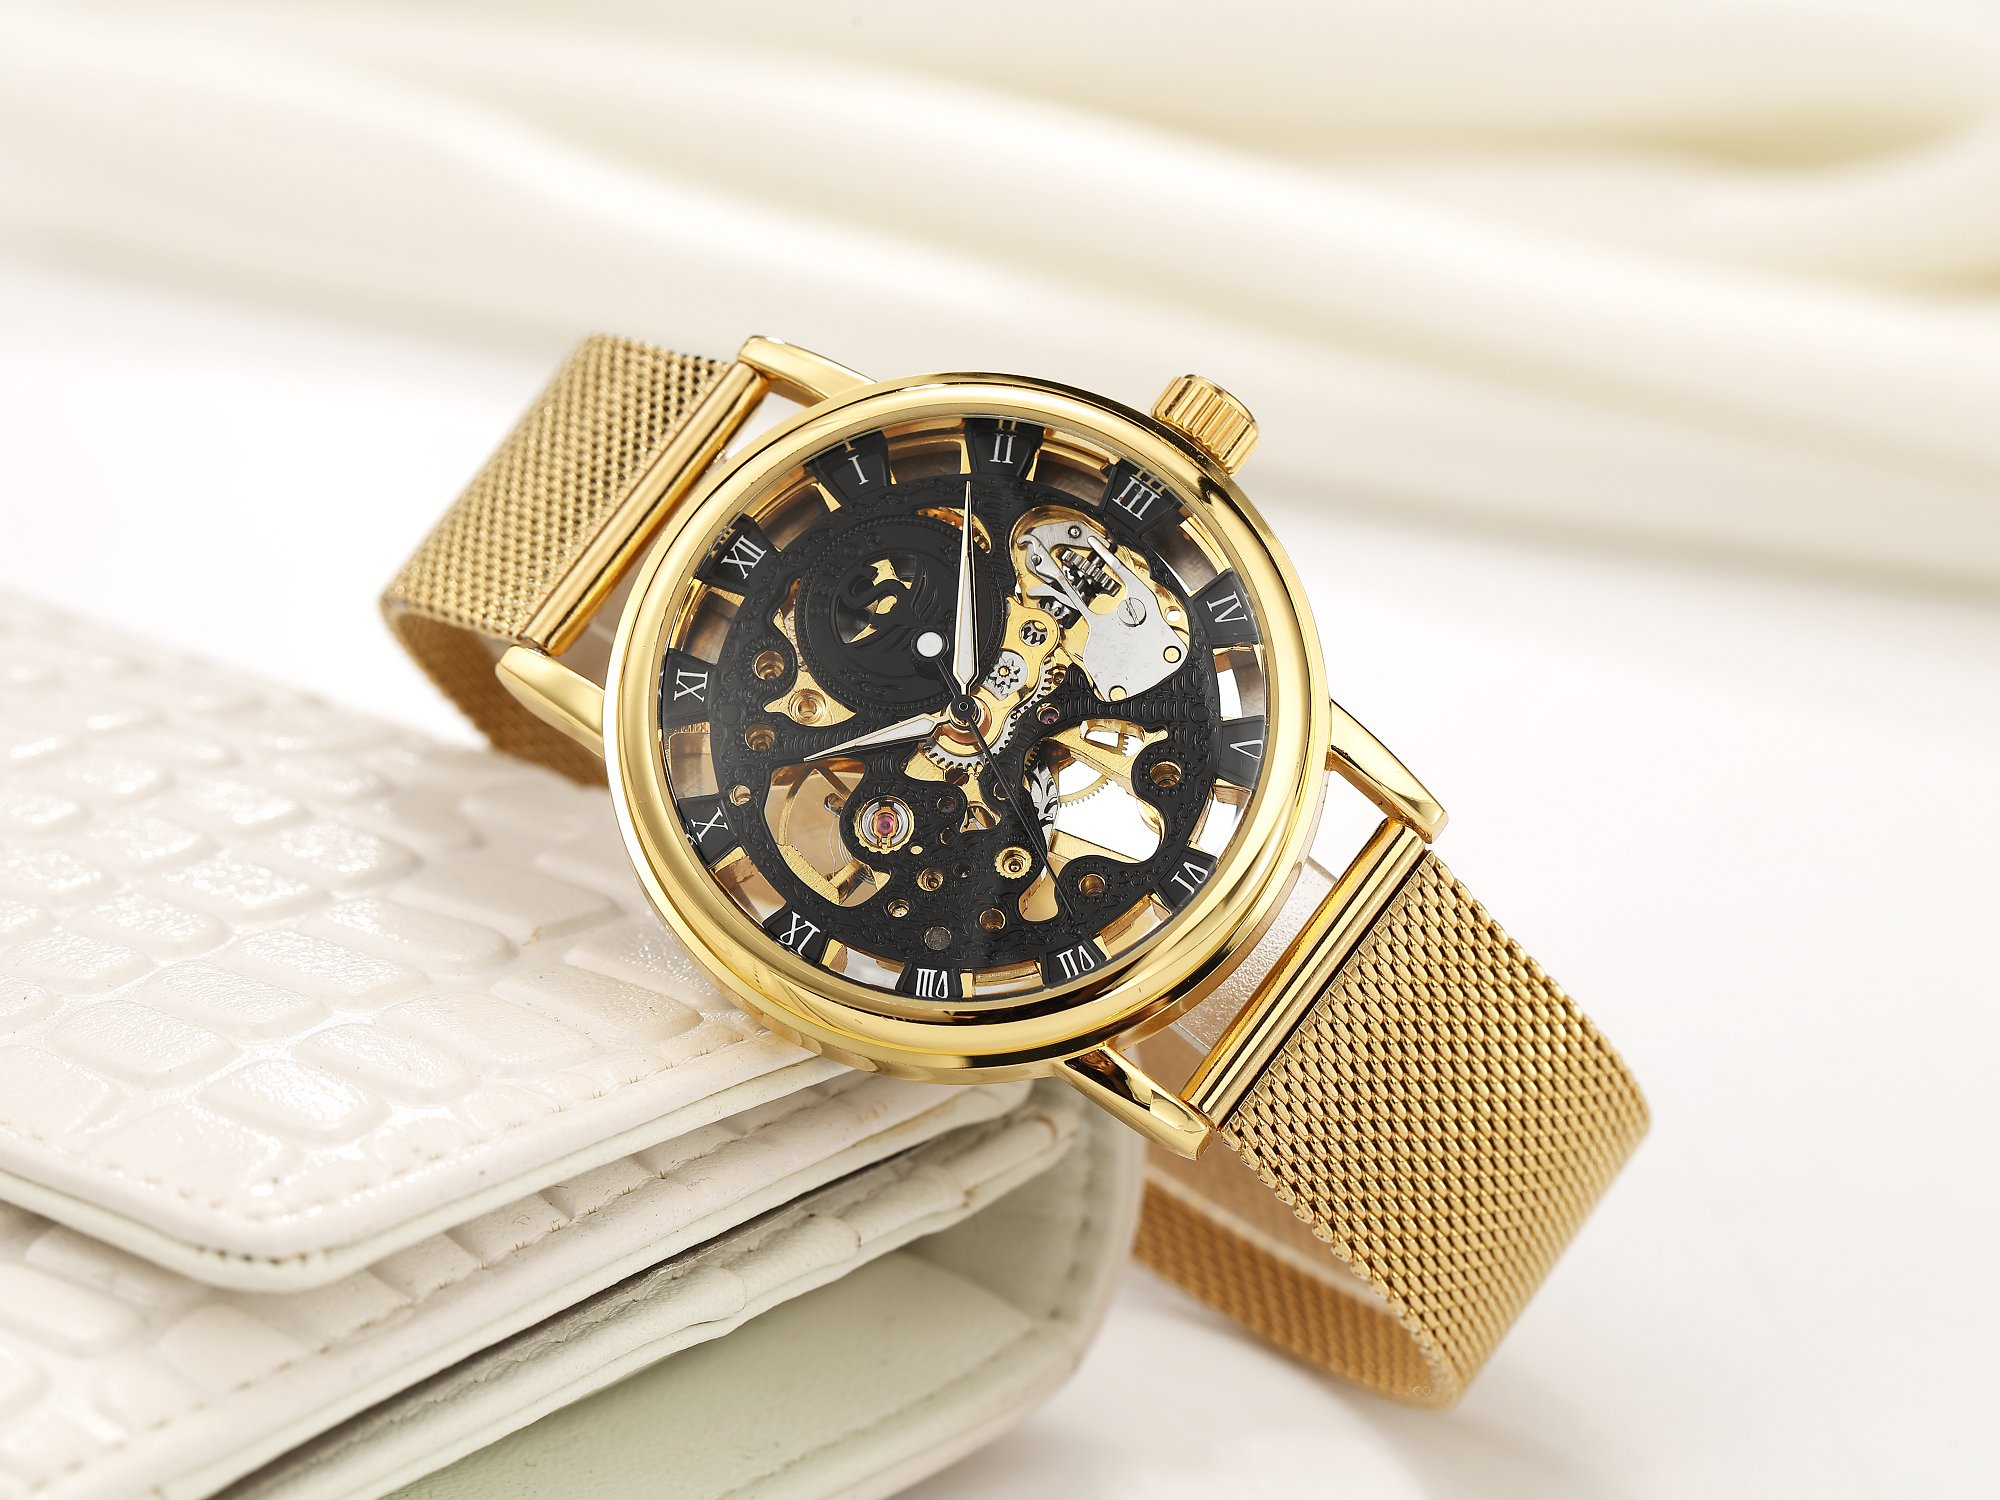 SEWOR Dress Royal Hollow Carving Mechanical Hand Wind Wrist Watch for Man with Mesh Steel Band Slim Design 4